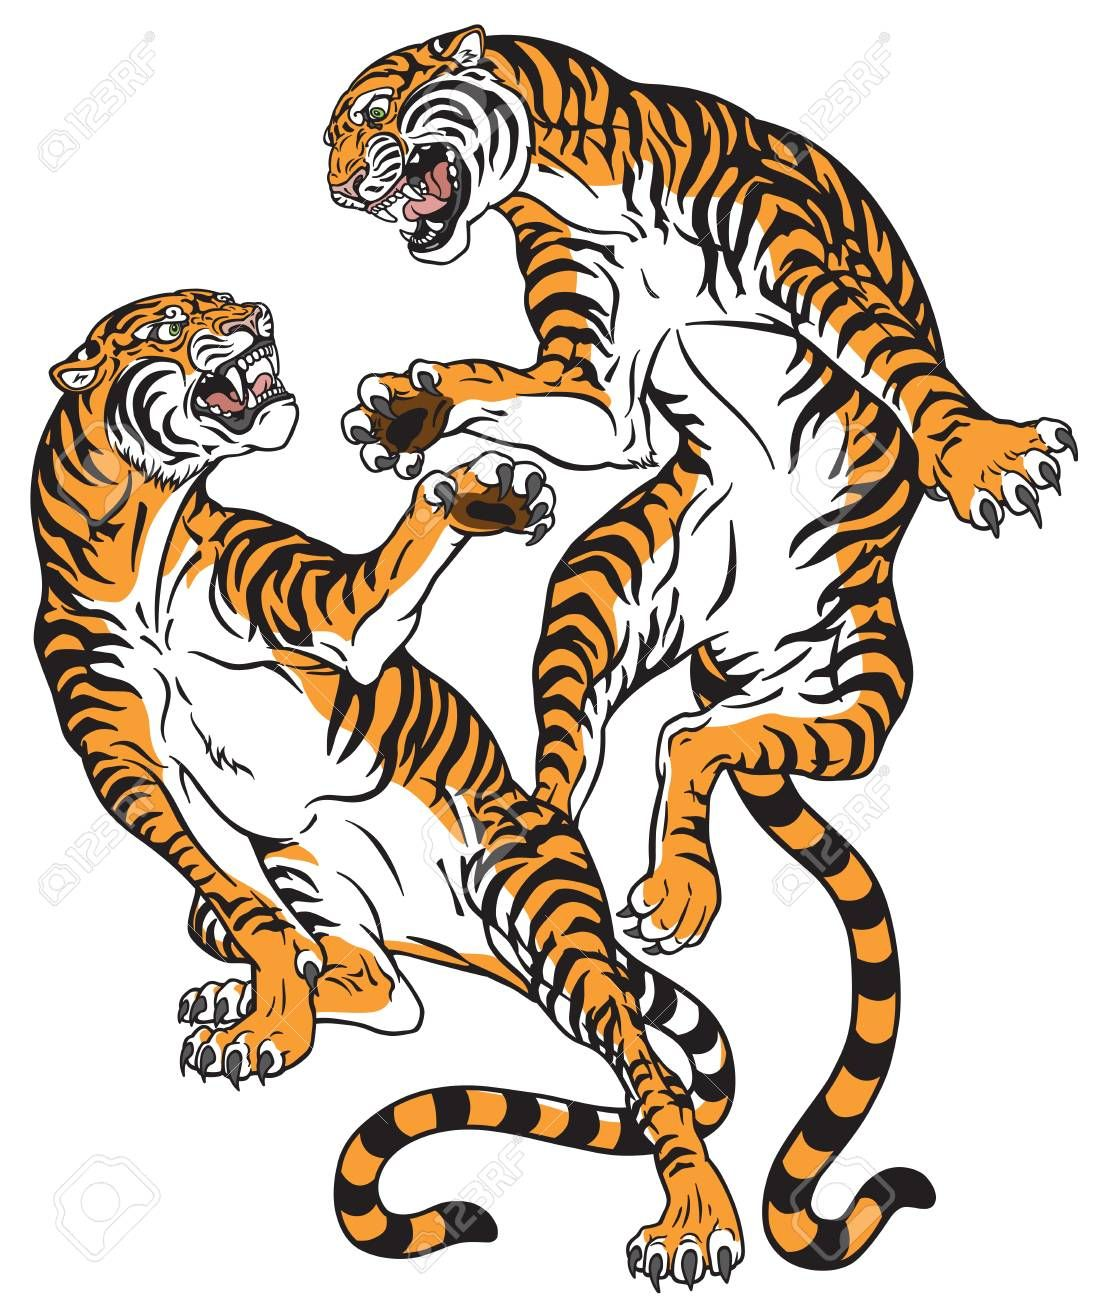 1093x1300 Pair Of Tigers In The Battle, Two Fighting Big Cats. Tattoo Style